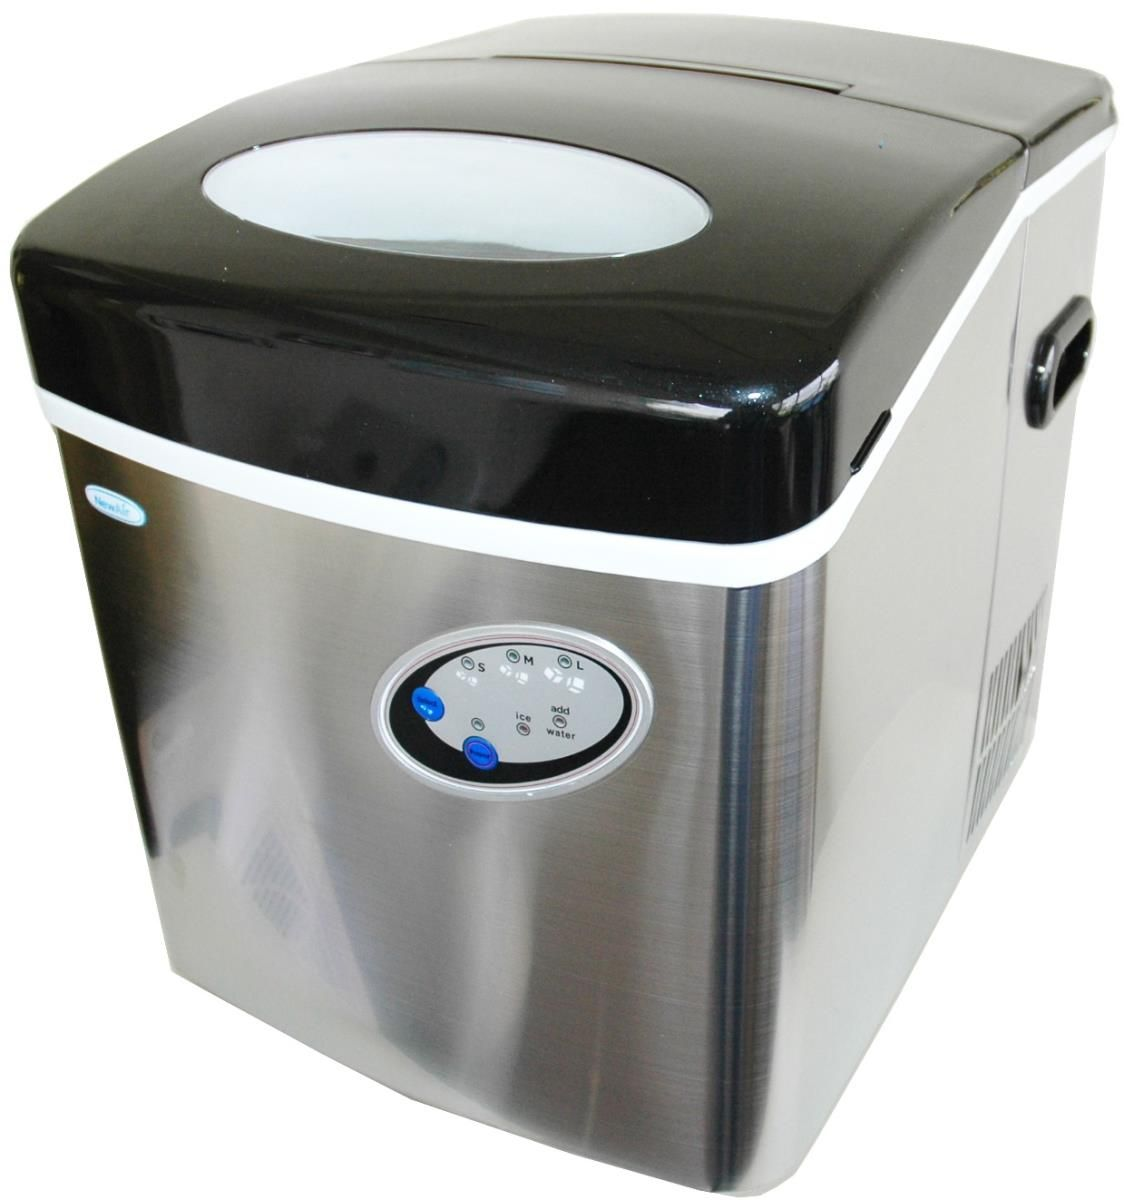 Newair Ai 200ss Portable Ice Maker Kitchenaid Ice Maker Crushed